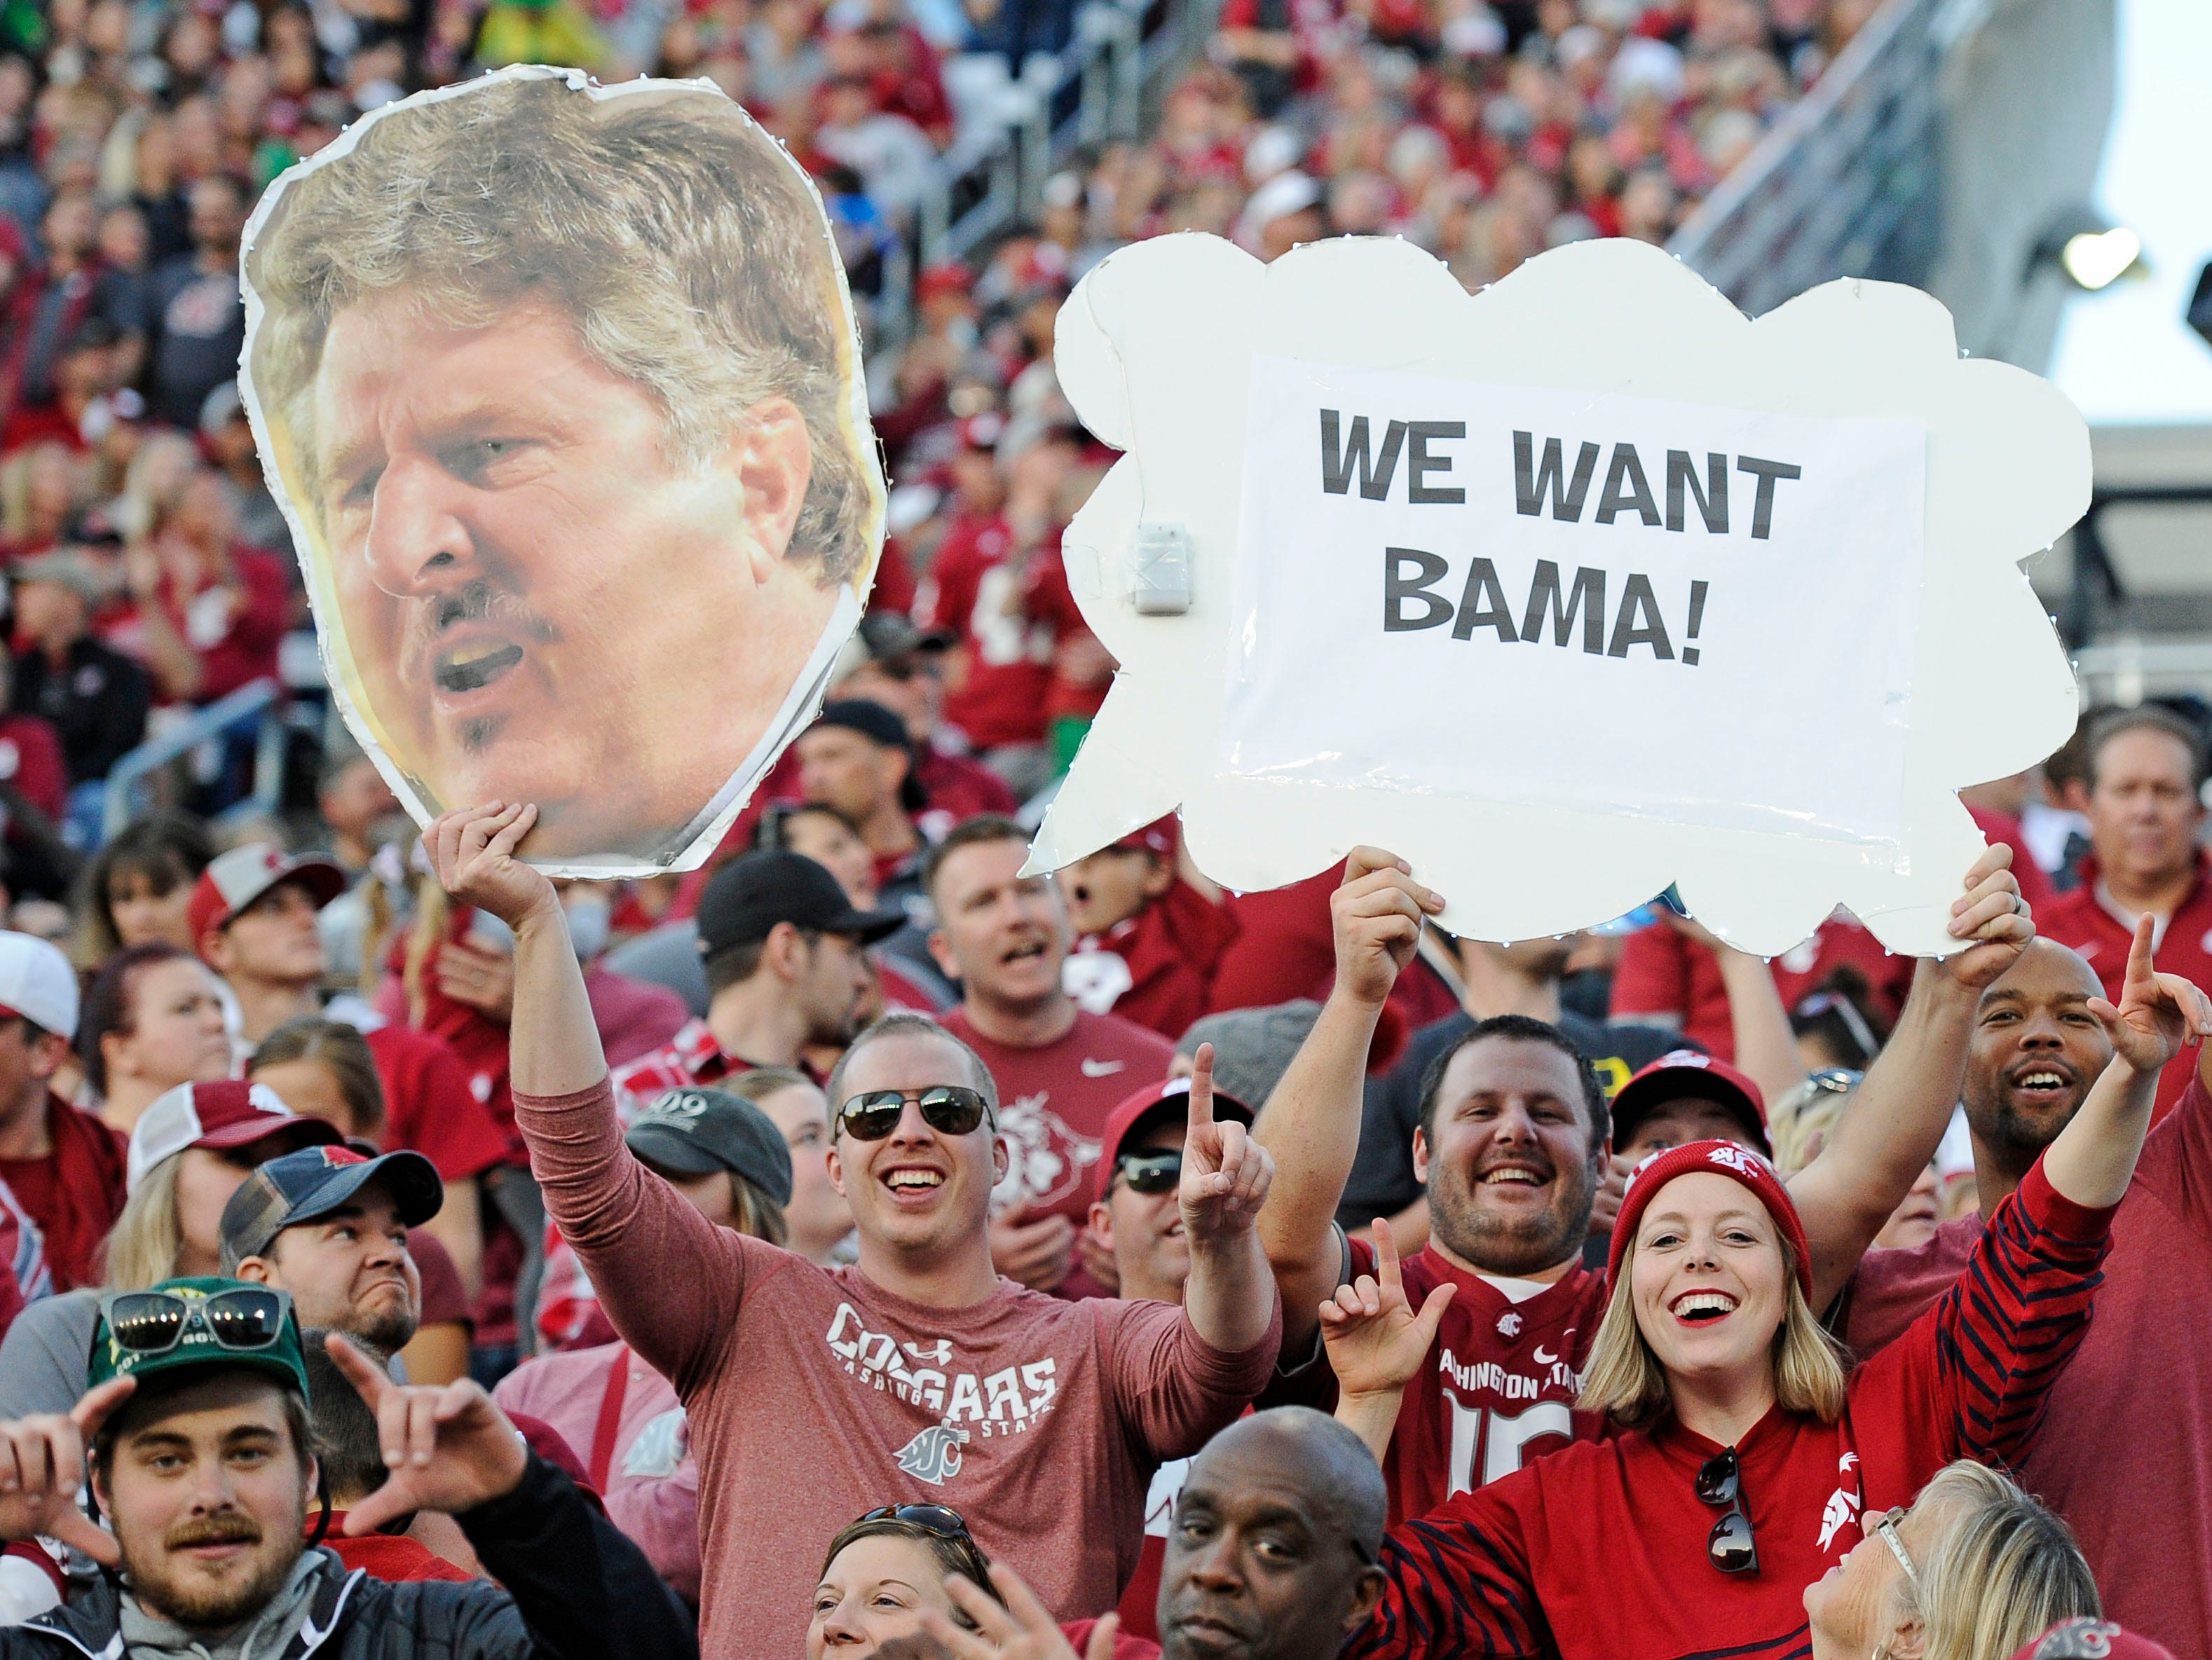 Week 8: Washington State Cougars fans hold up signs during a football game against the Oregon Ducks at Martin Stadium.